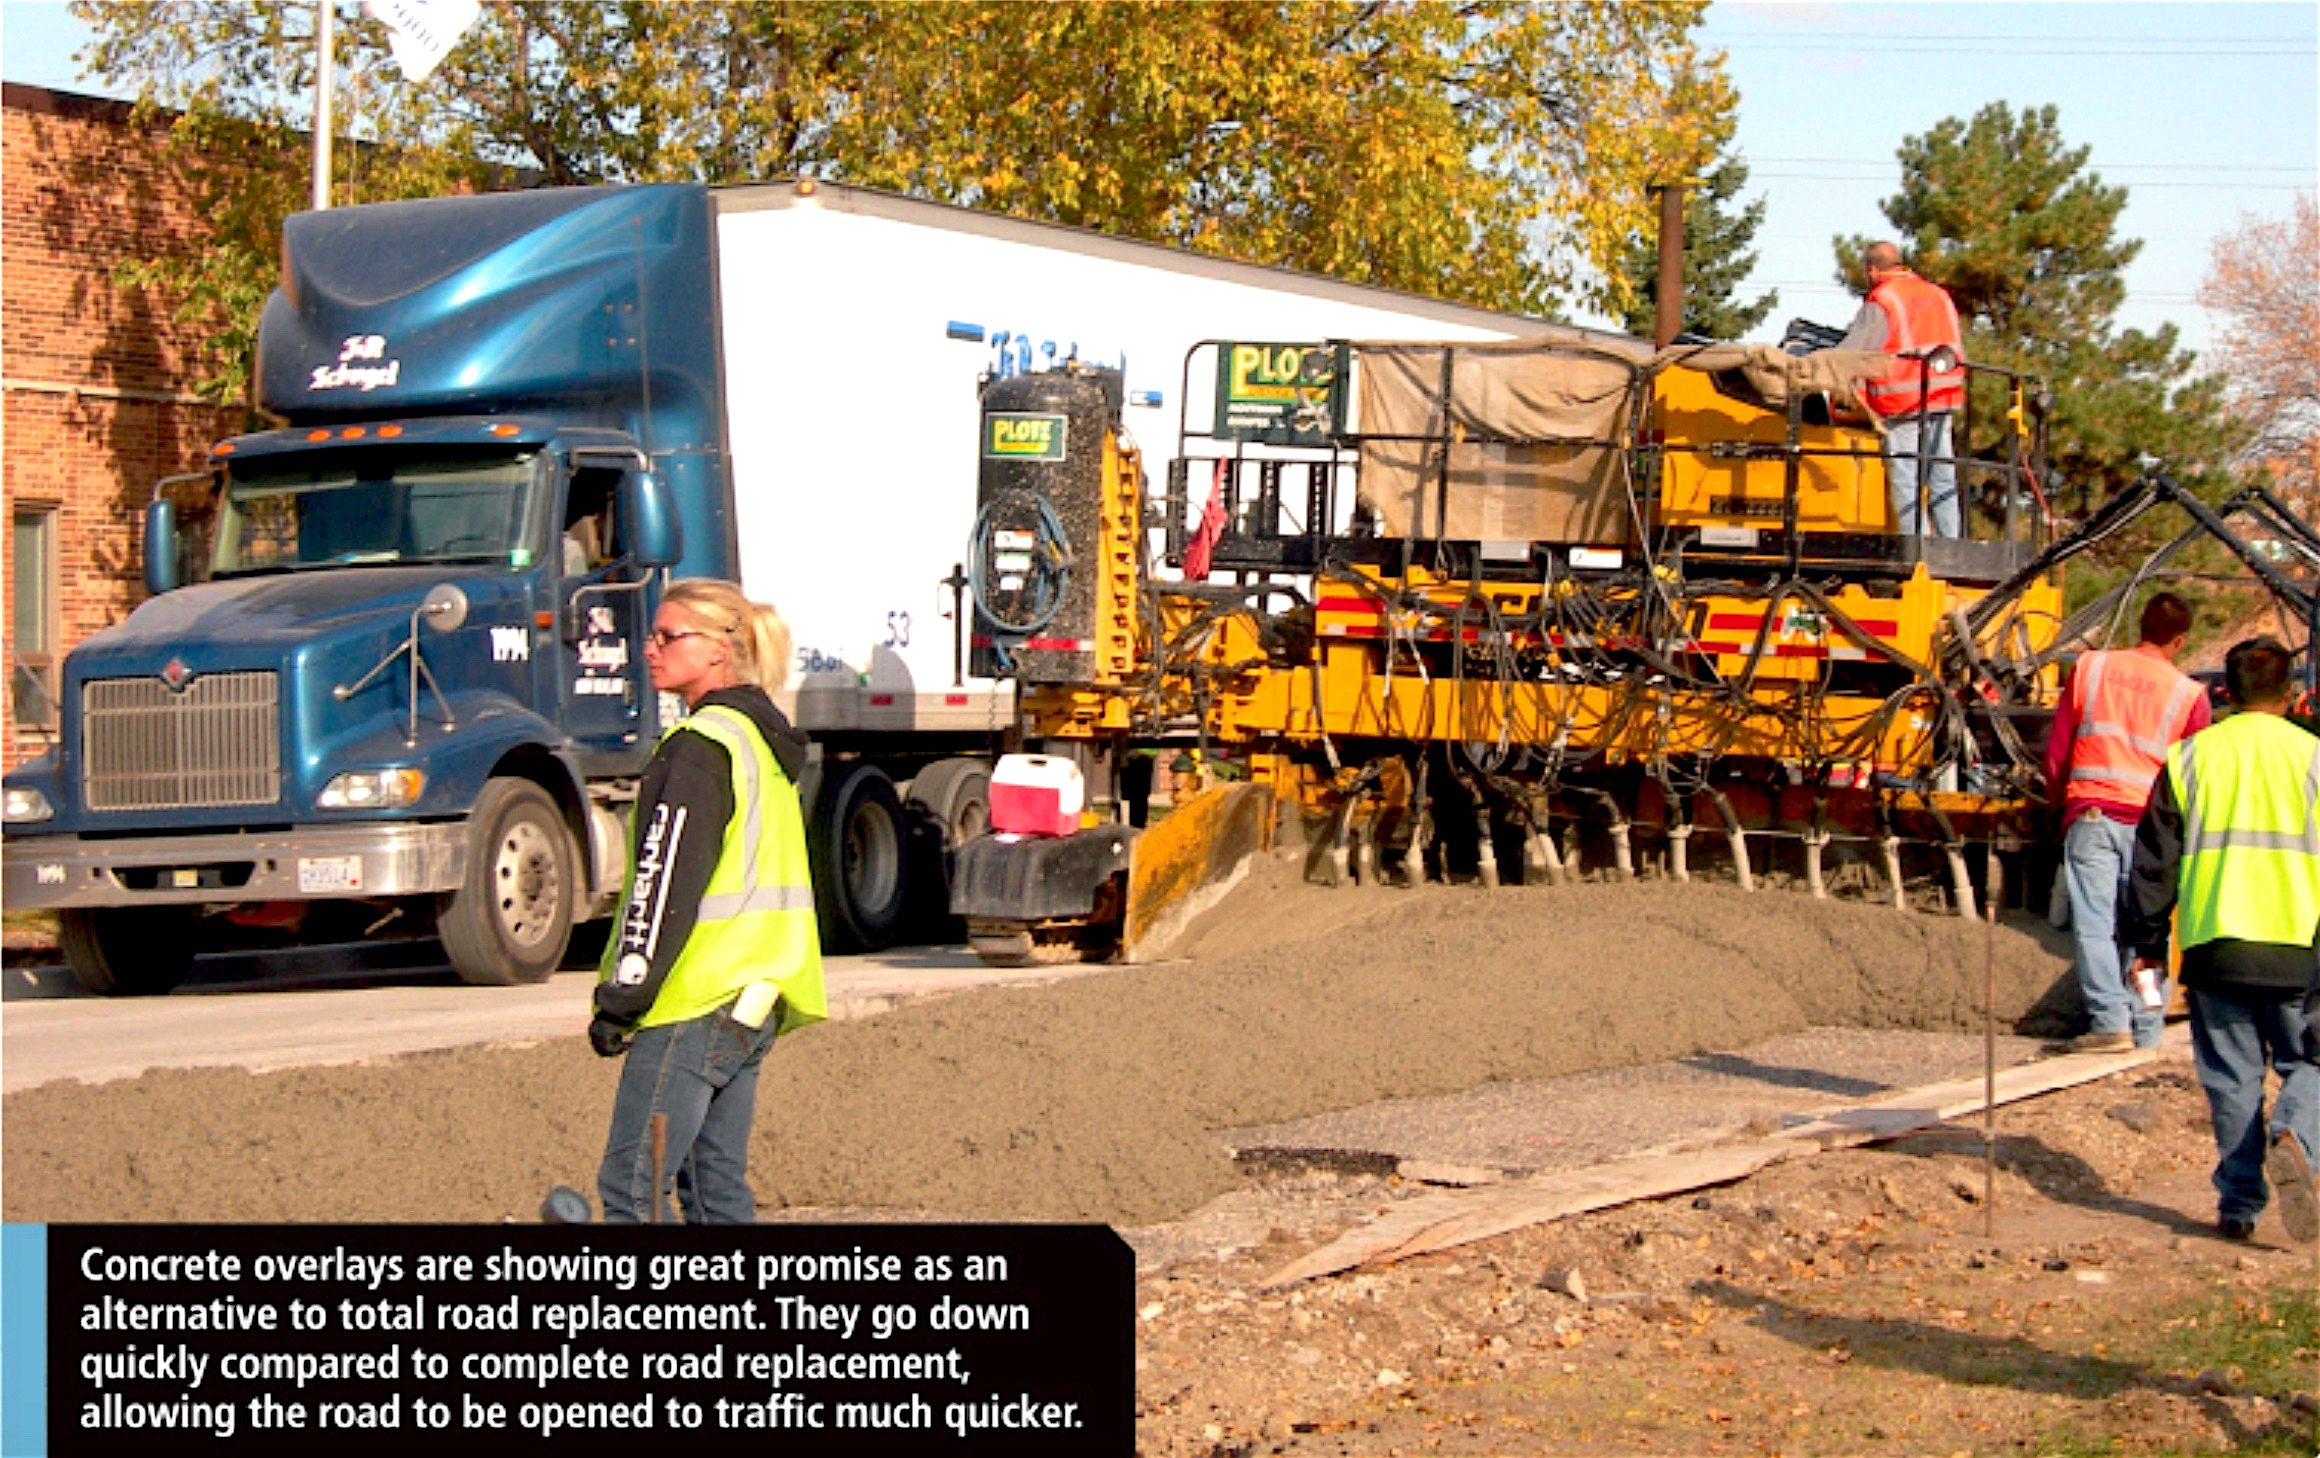 Some Old Concrete Pavement Technologies—Overlays & FDR—Making a Comeback & Giving Asphalt a Run for its Money